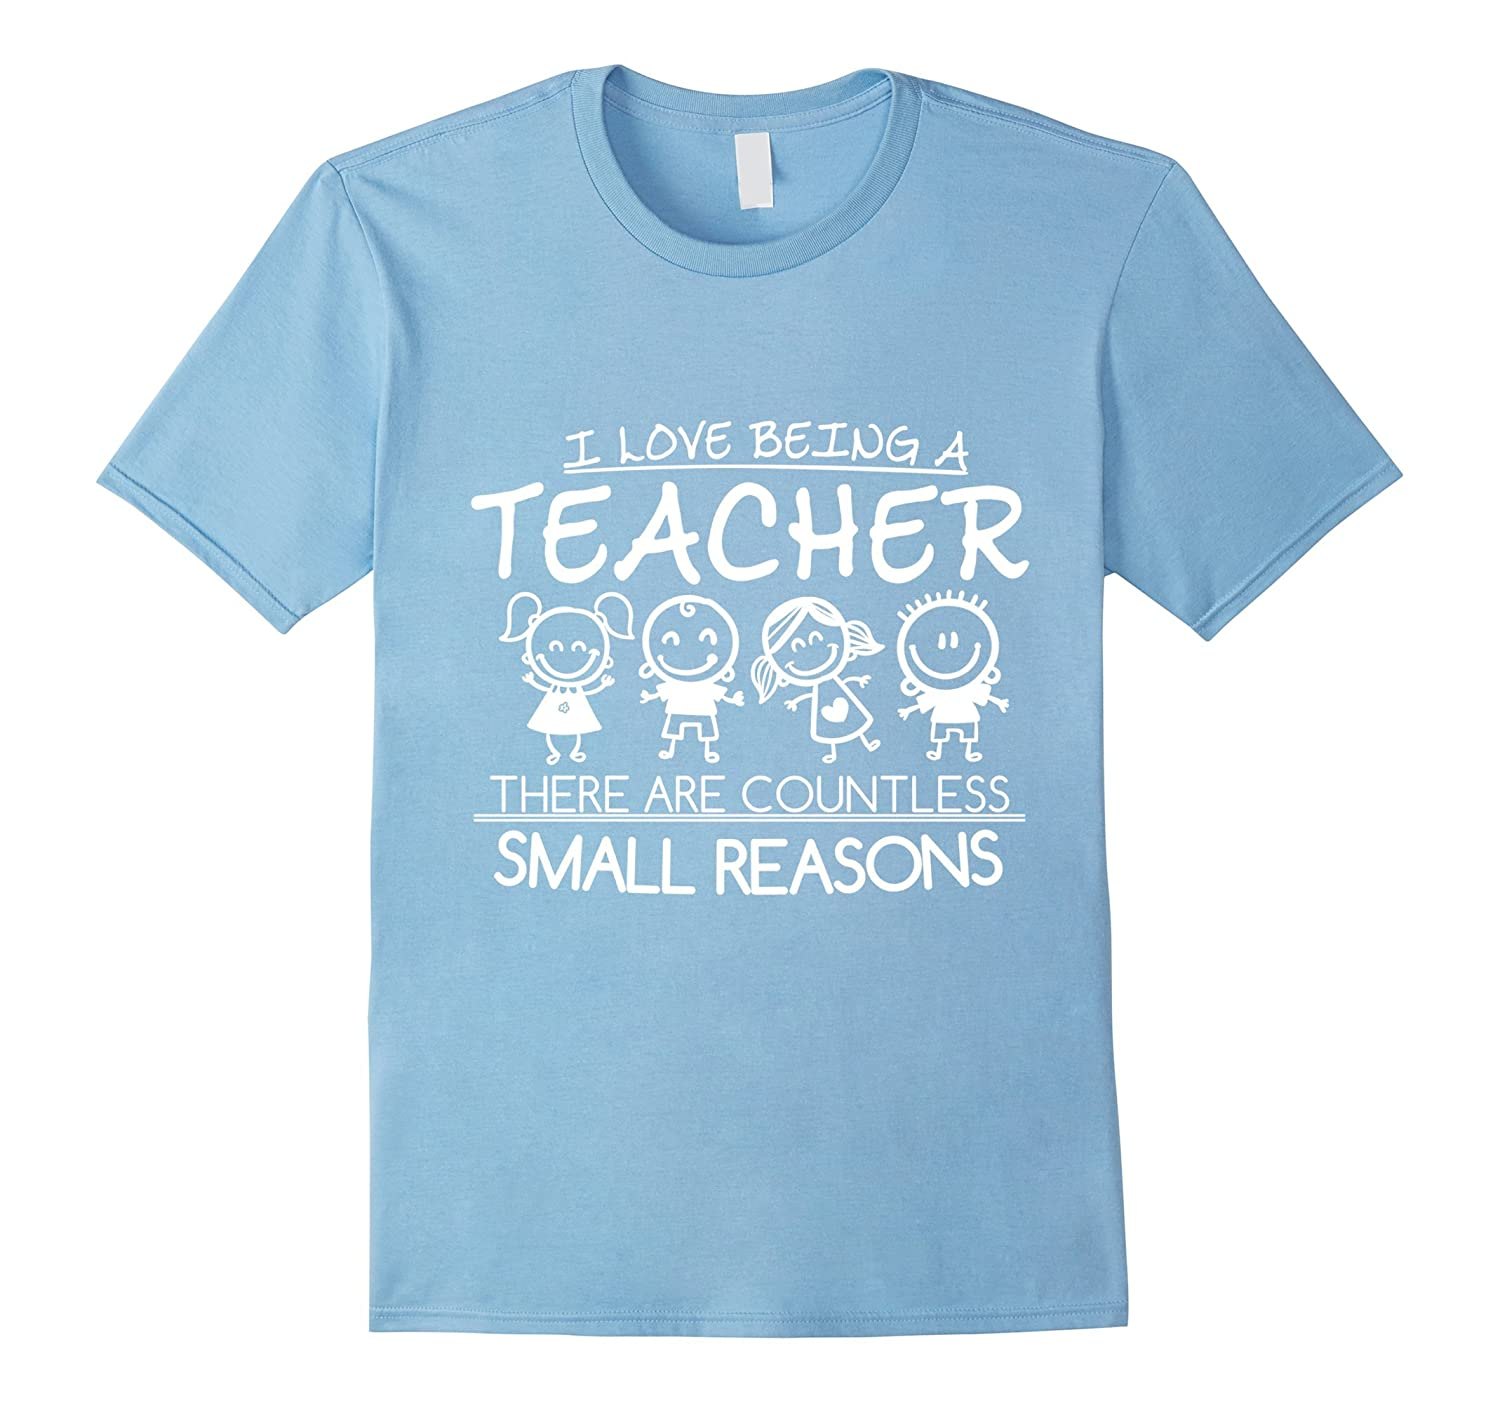 I love being a teacher for small reasons T-Shirt TShirt-TD